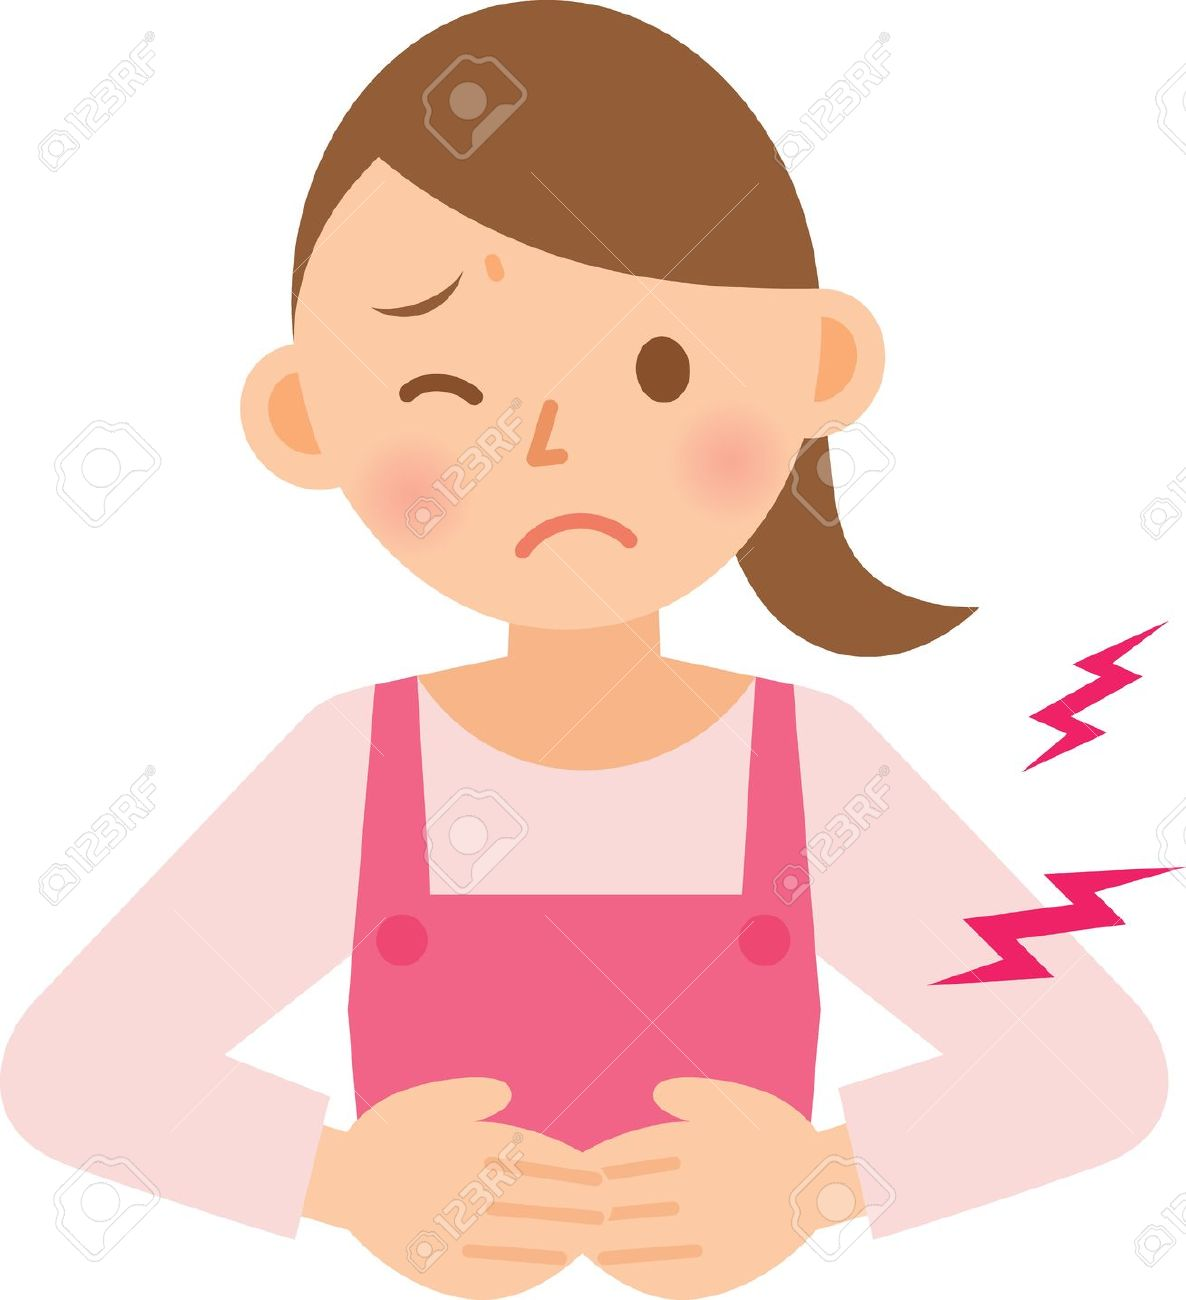 Stomach clipart. Woman ache